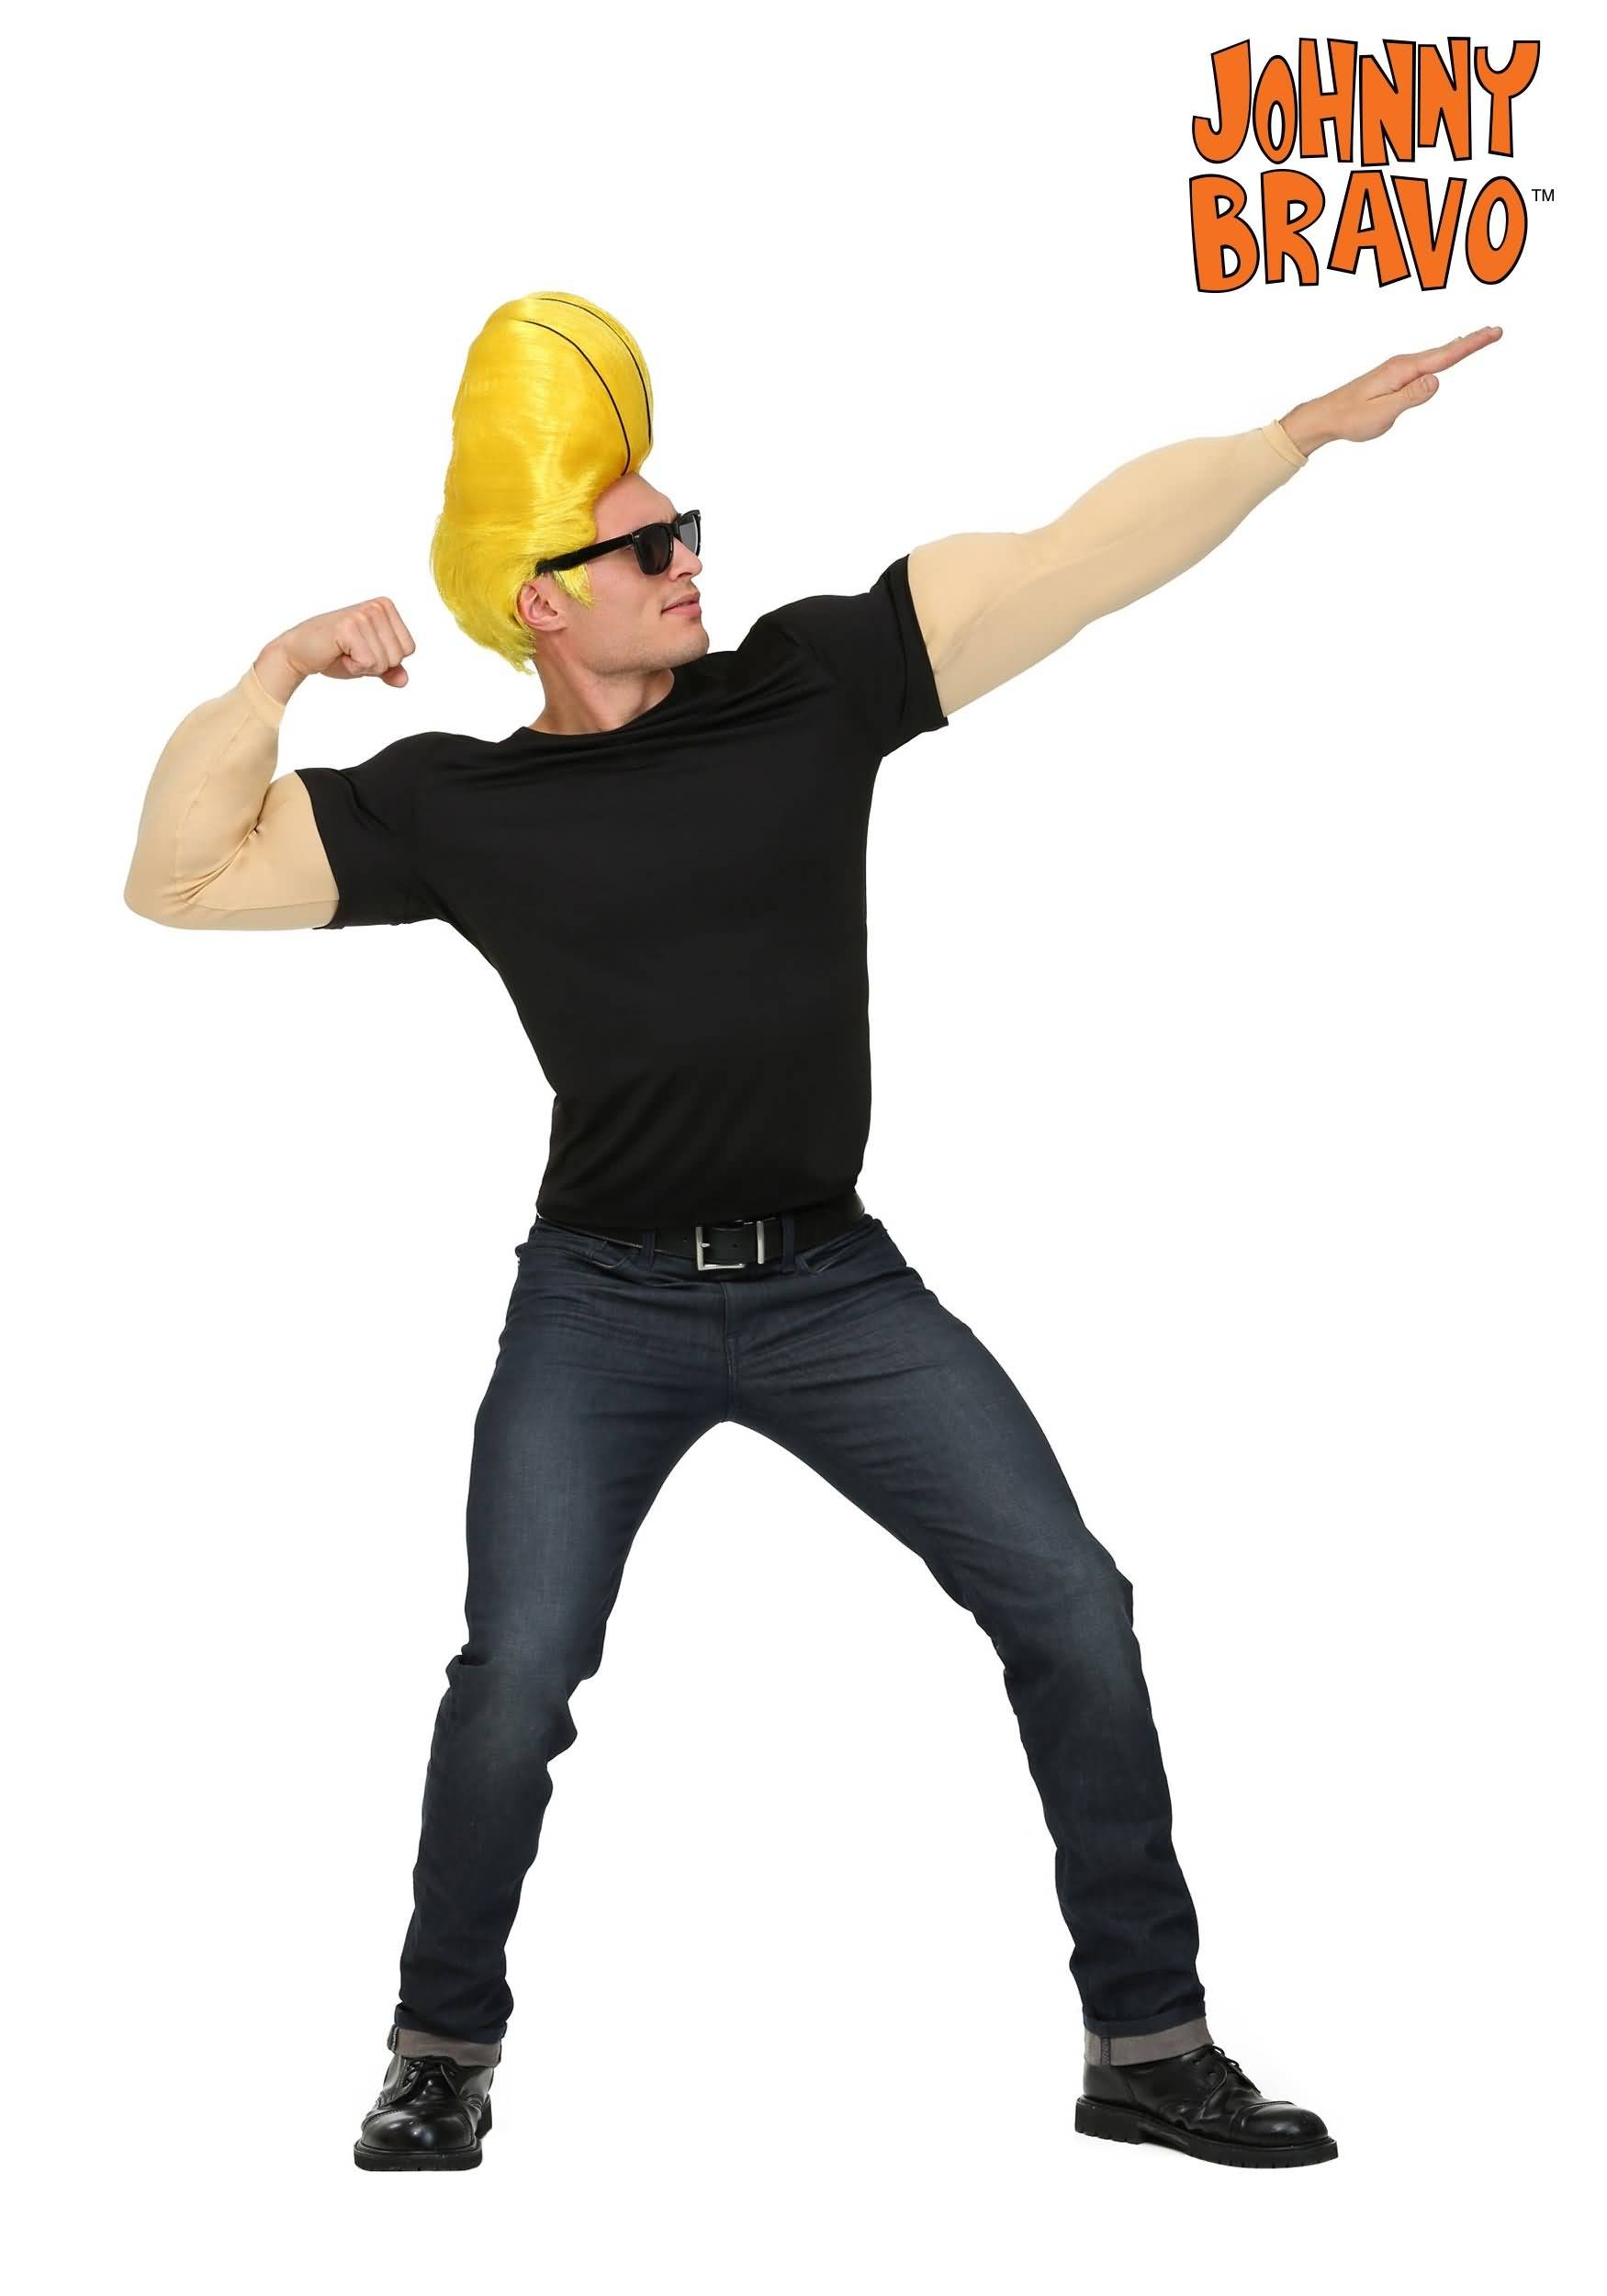 Signature Pose Of Johnny Bravo